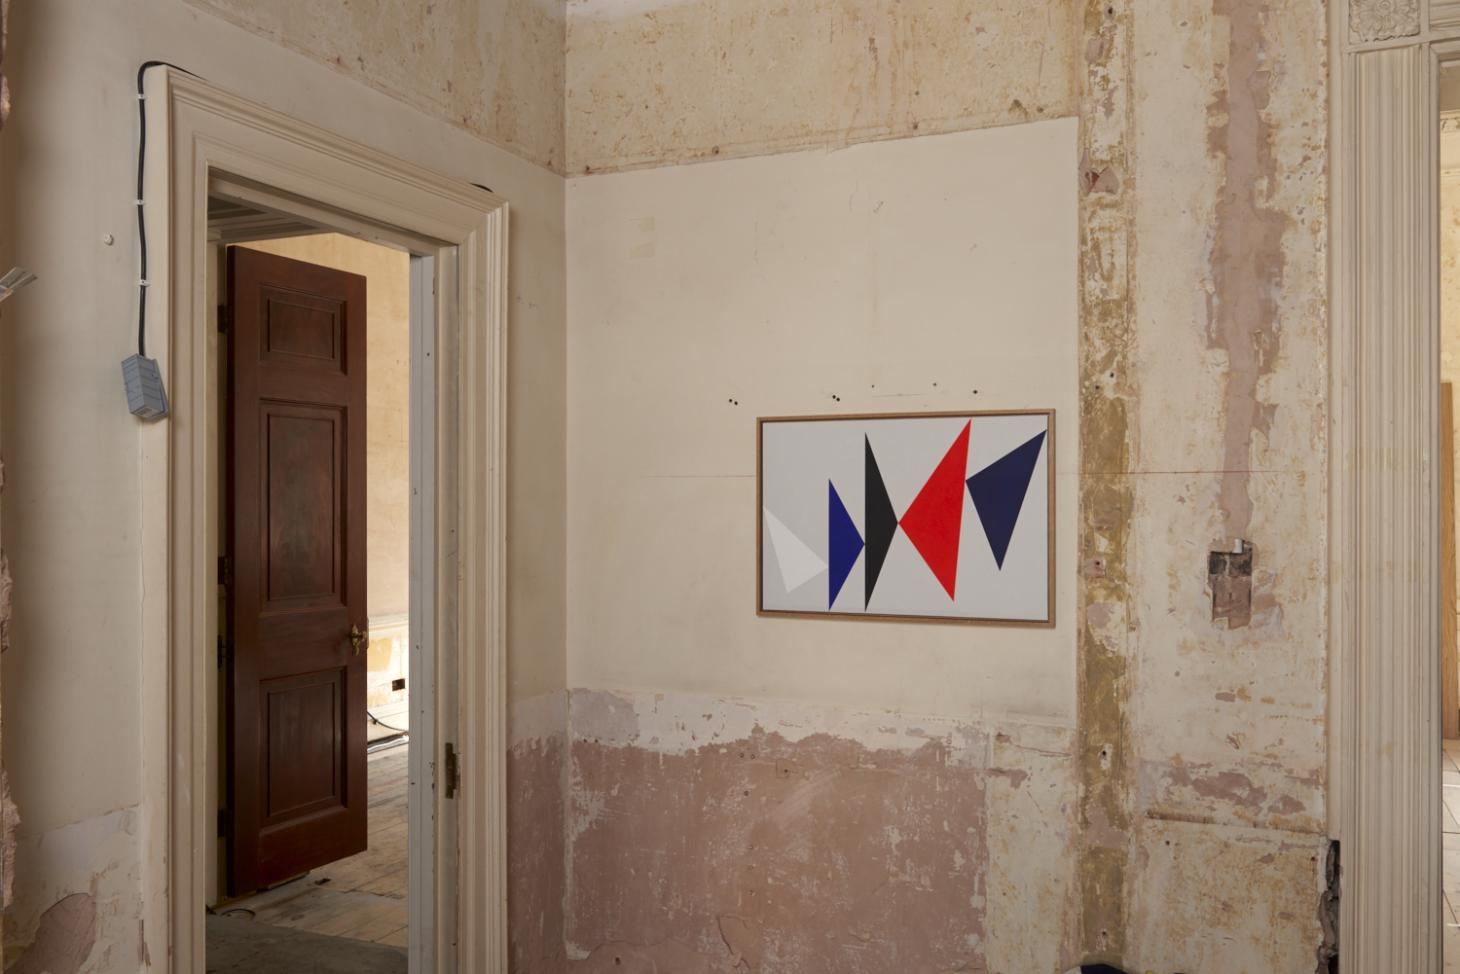 Painting featuring triangles in red and blue